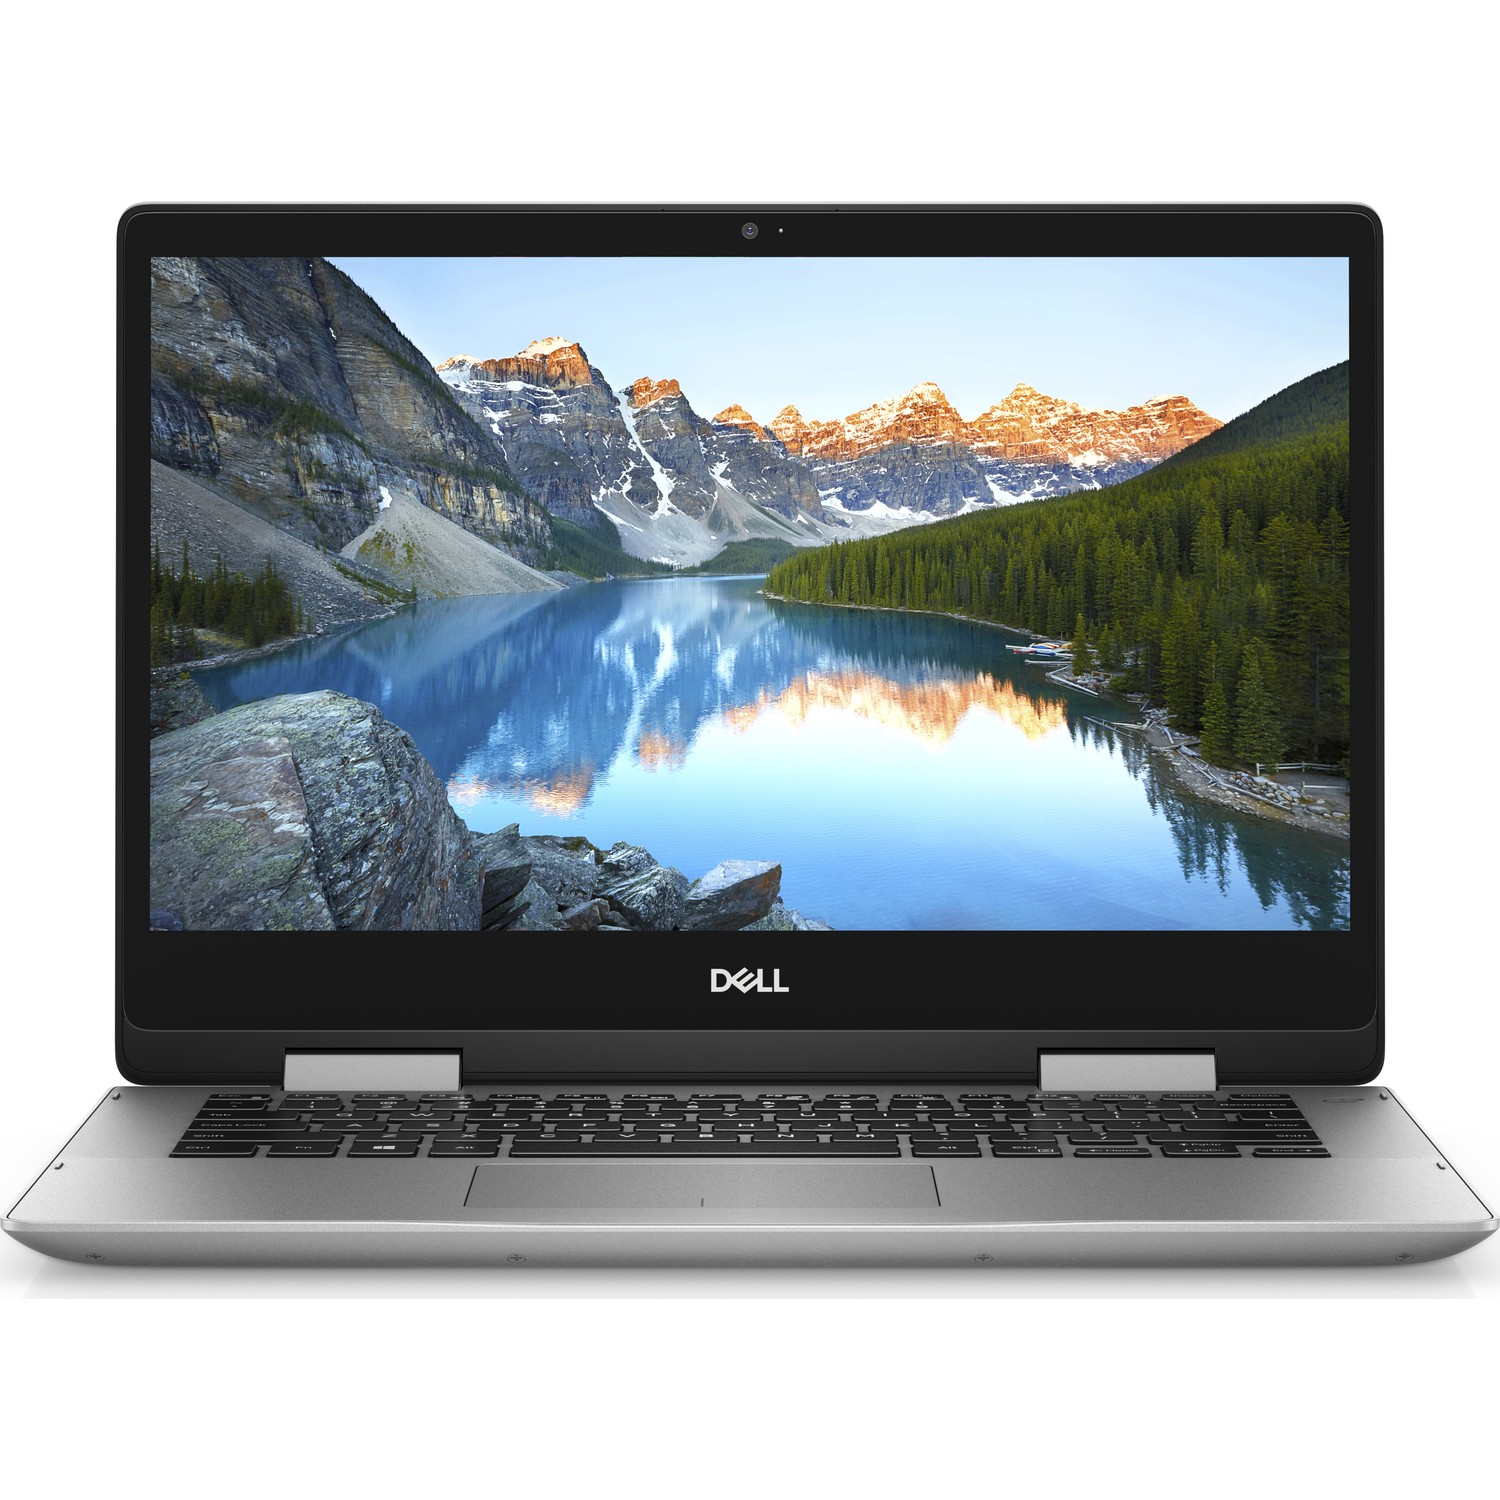 "DELL INSPIRON 5482-FHDTS26W82C I5-8265U 8GB 256GB SSD 2GB MX130 14"" FHD IPS TOUCH WIN10 NOTEBOOK"